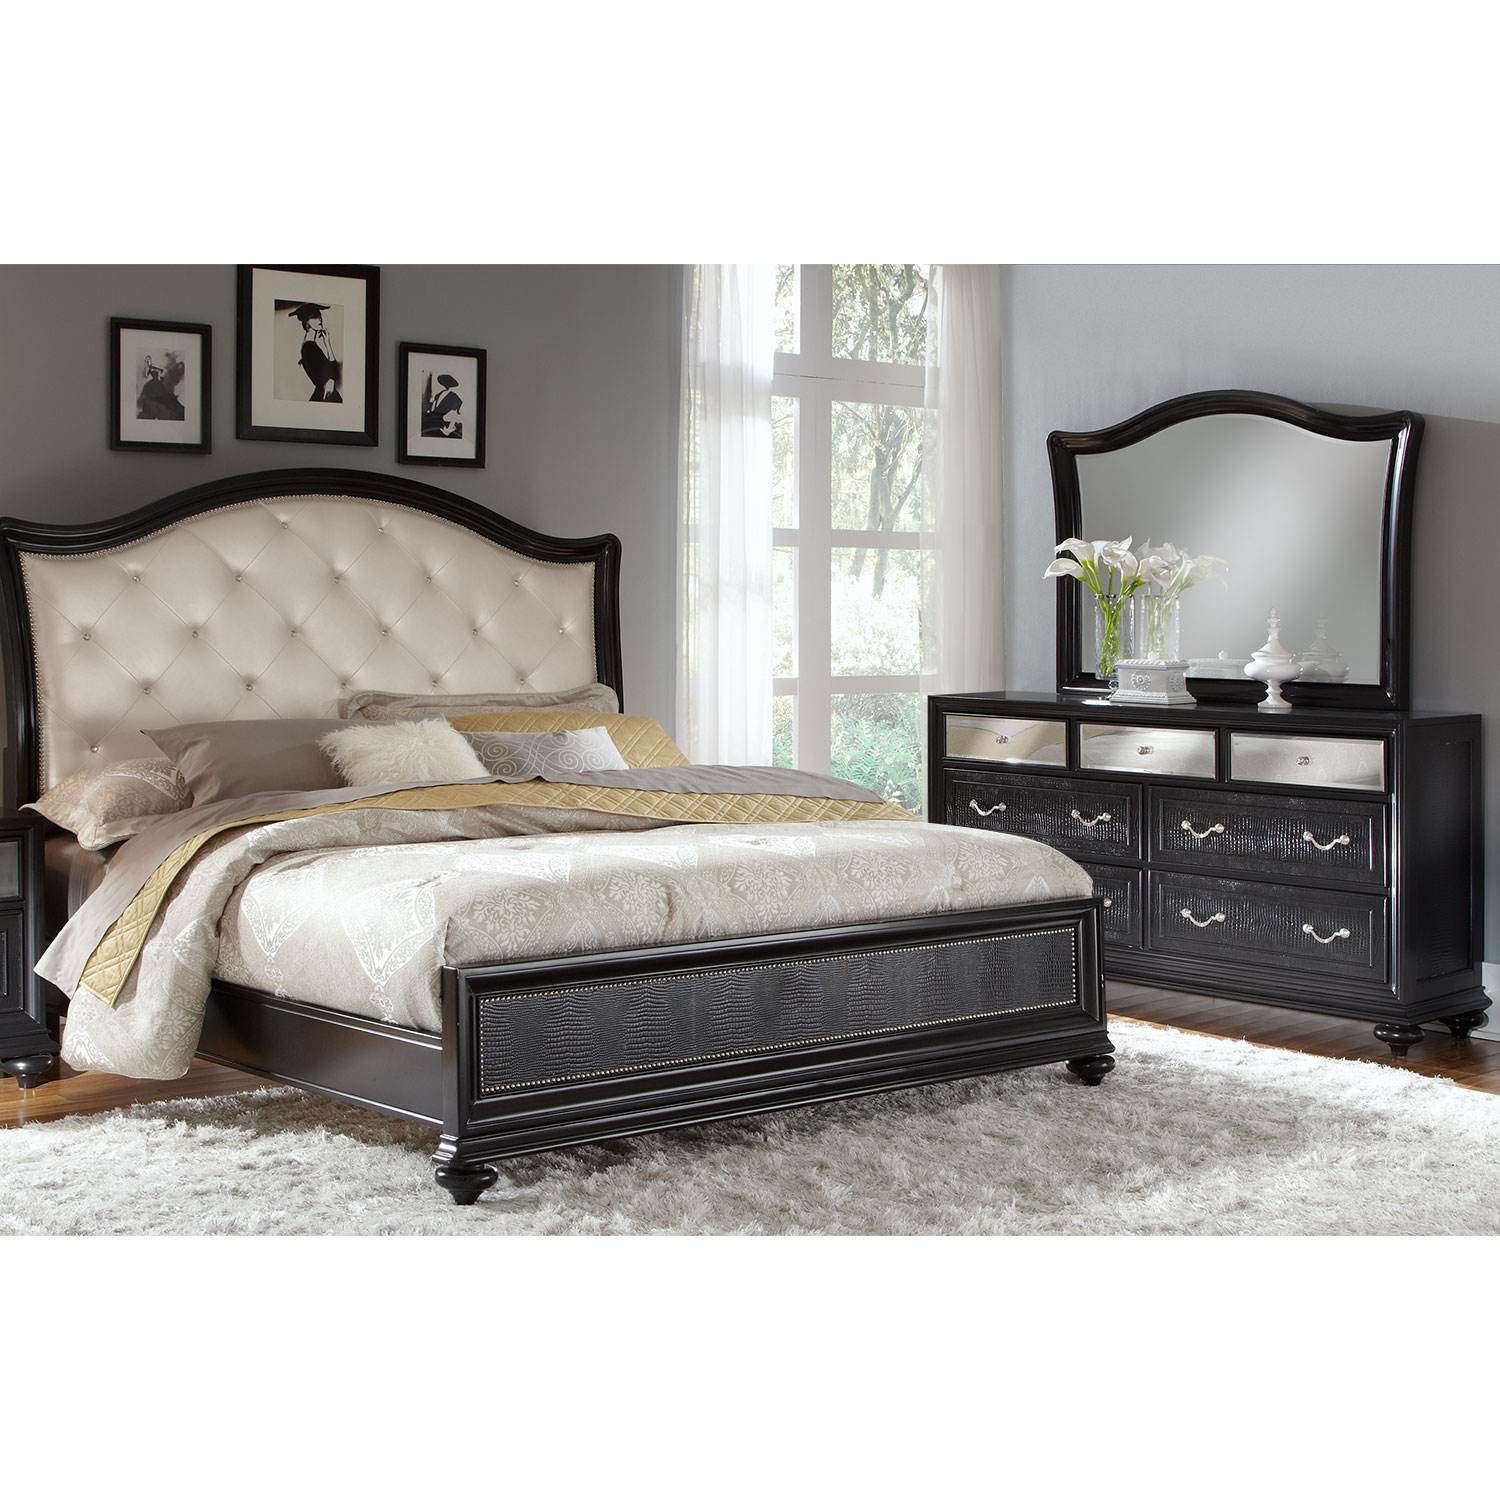 Marilyn 5 Piece Queen Bedroom Set   Ebony by Pulaski. The Marilyn Collection   Ebony   Value City Furniture